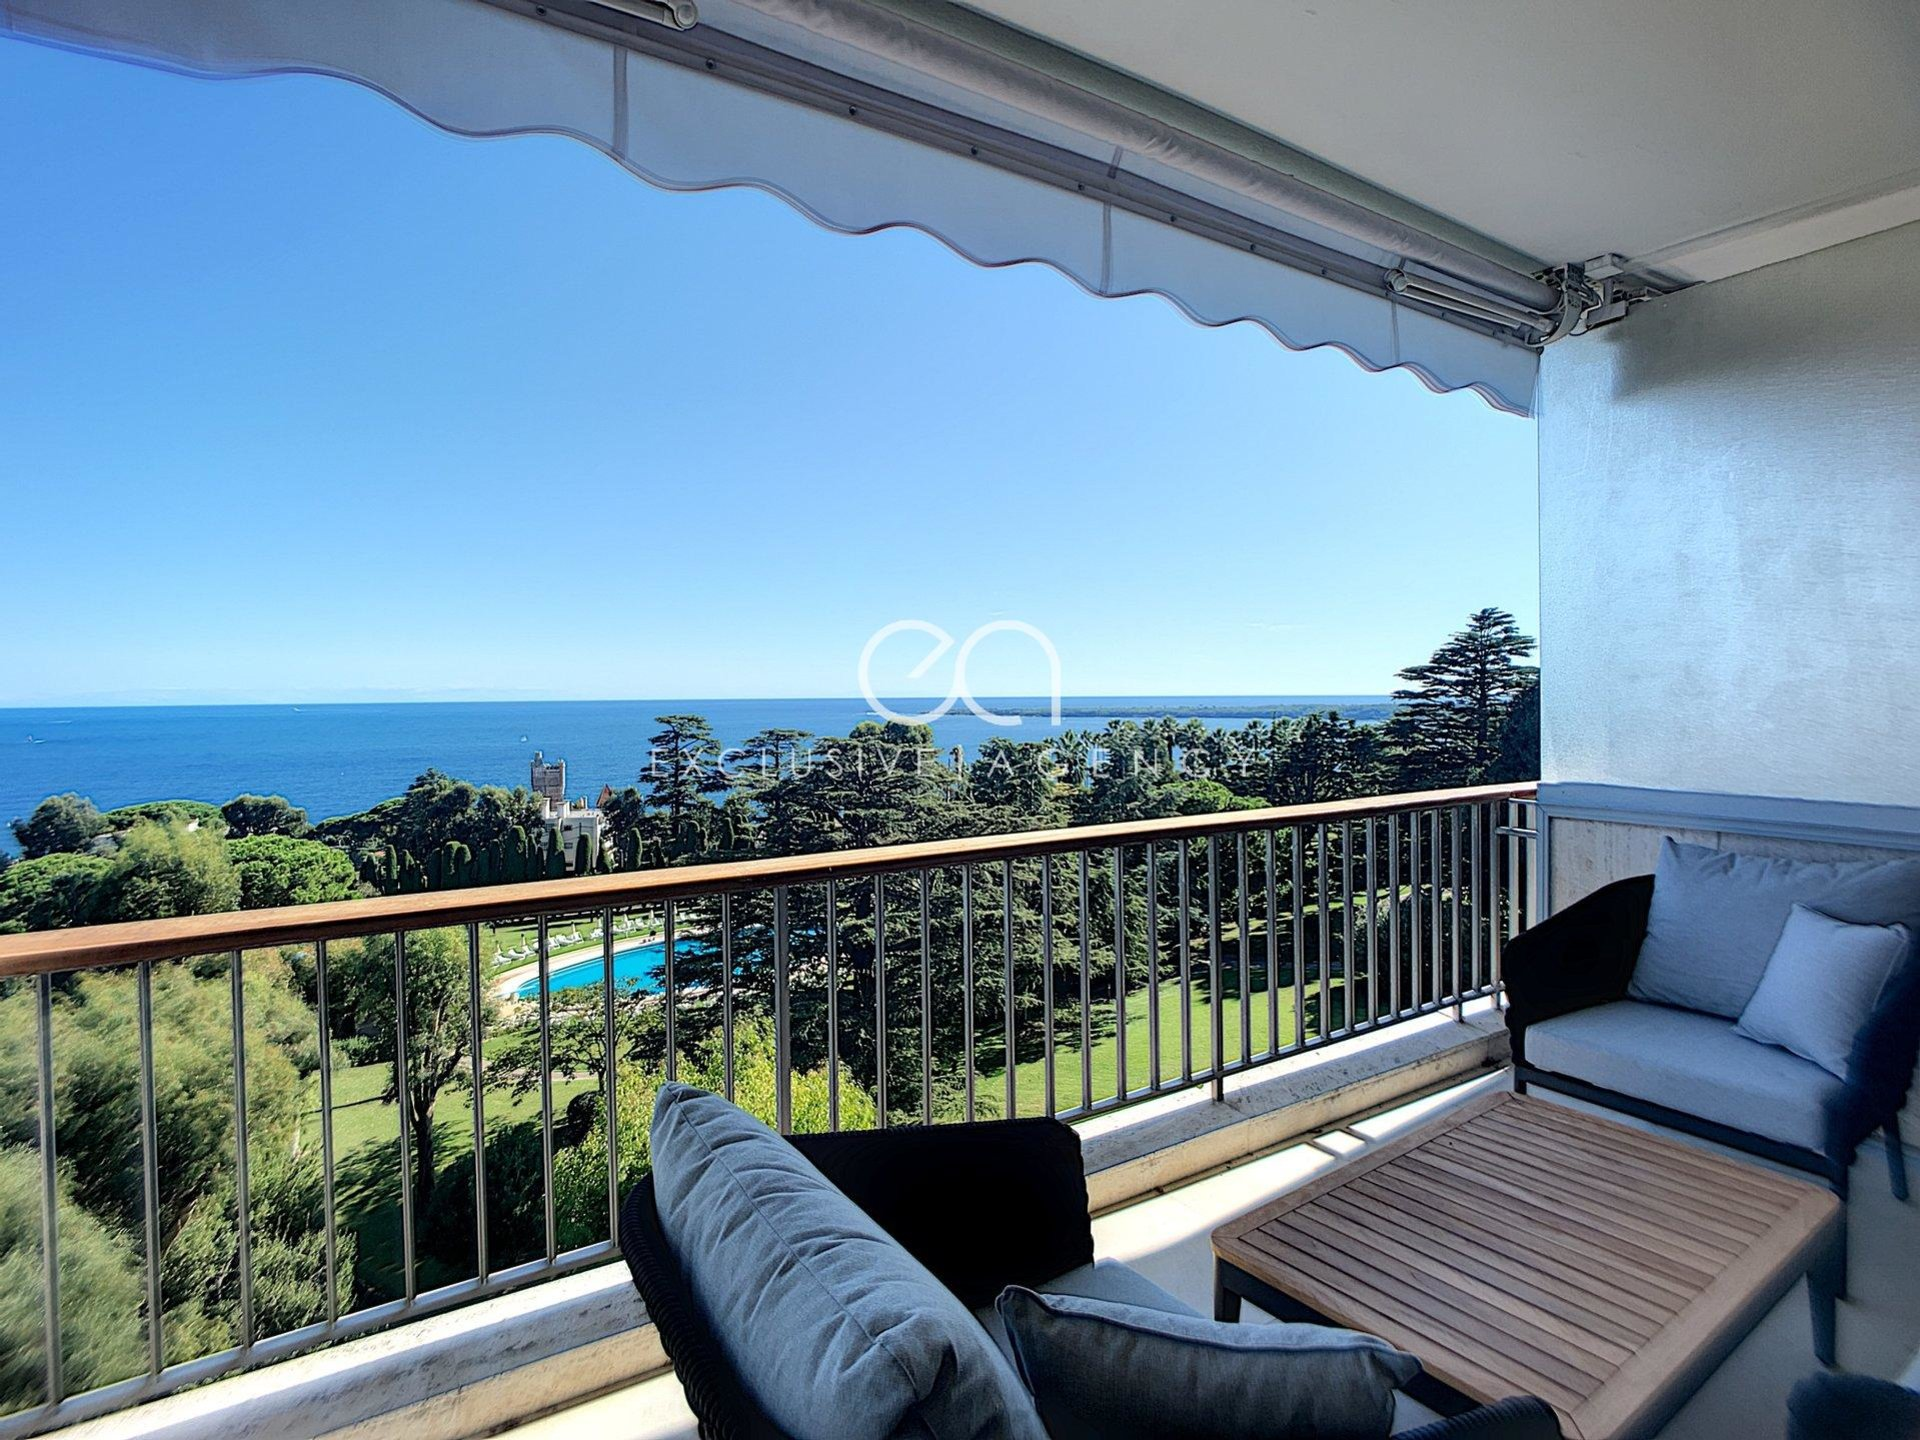 CANNES VENTE APPARTEMENT RENOVE VUE MER GRAND 2 PIECES TERRASE PISCINE TENNIS.